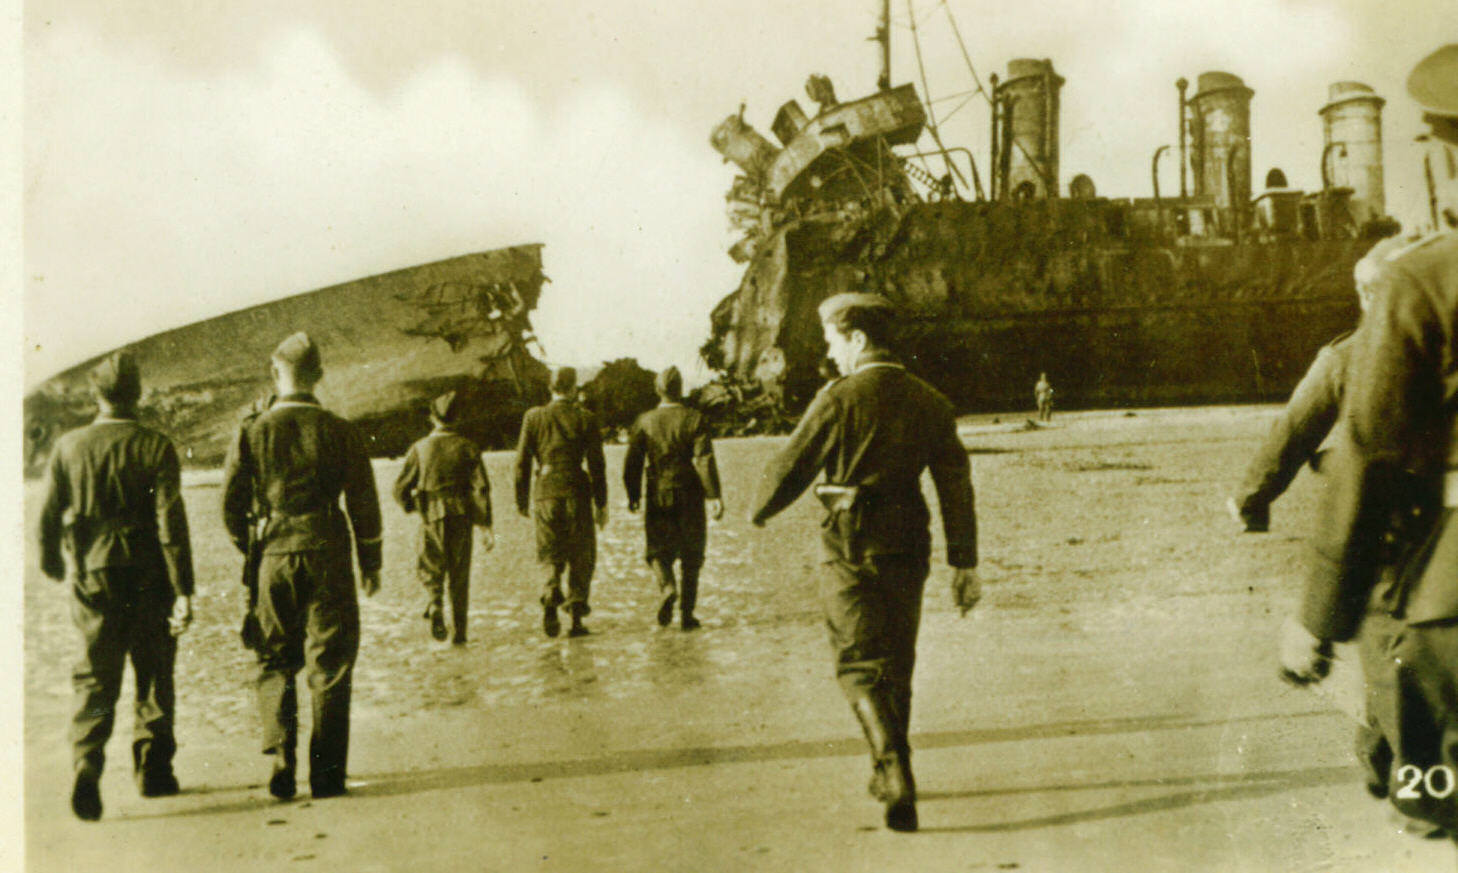 the-german-victors-on-the-beach-showing-of-the-ships-depicted-in-the-new-film